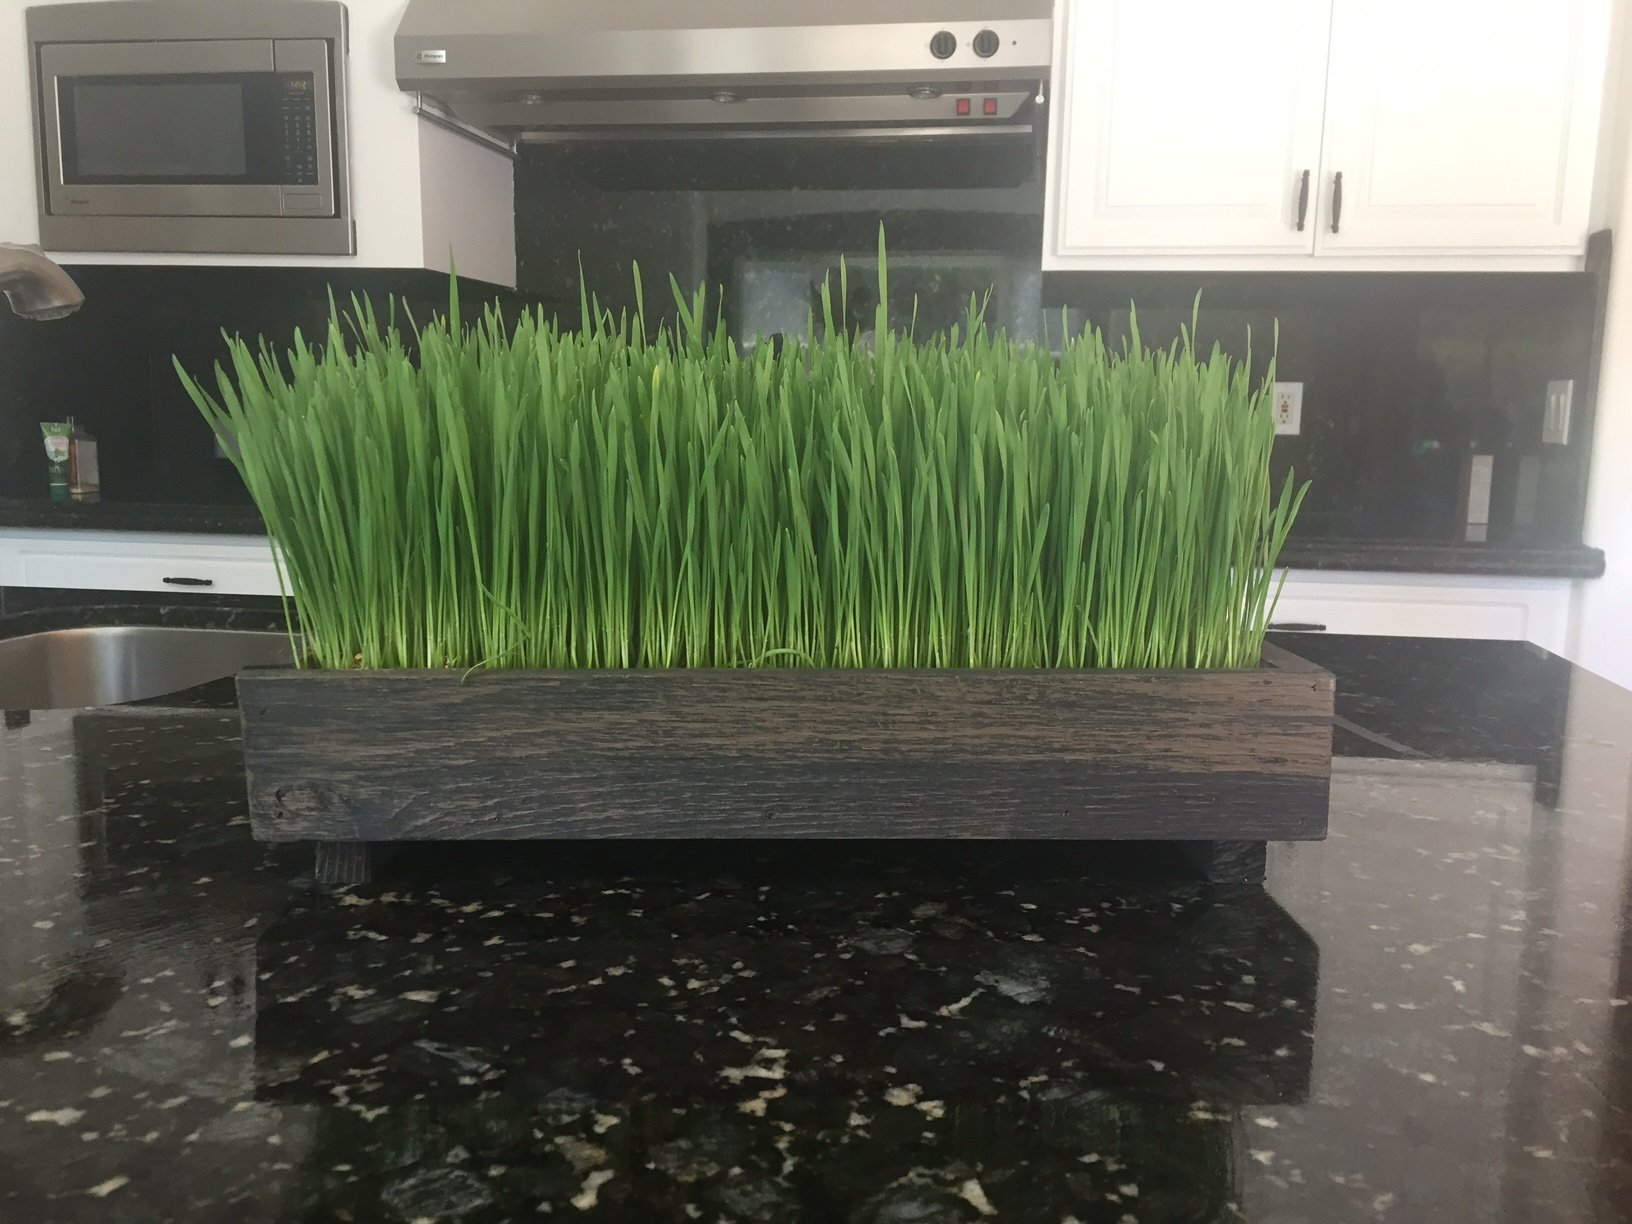 Complete Organic Wheatgrass kit with Cedar Planter, Organic Soil, Seeds and Instructions (Wicker Brown)